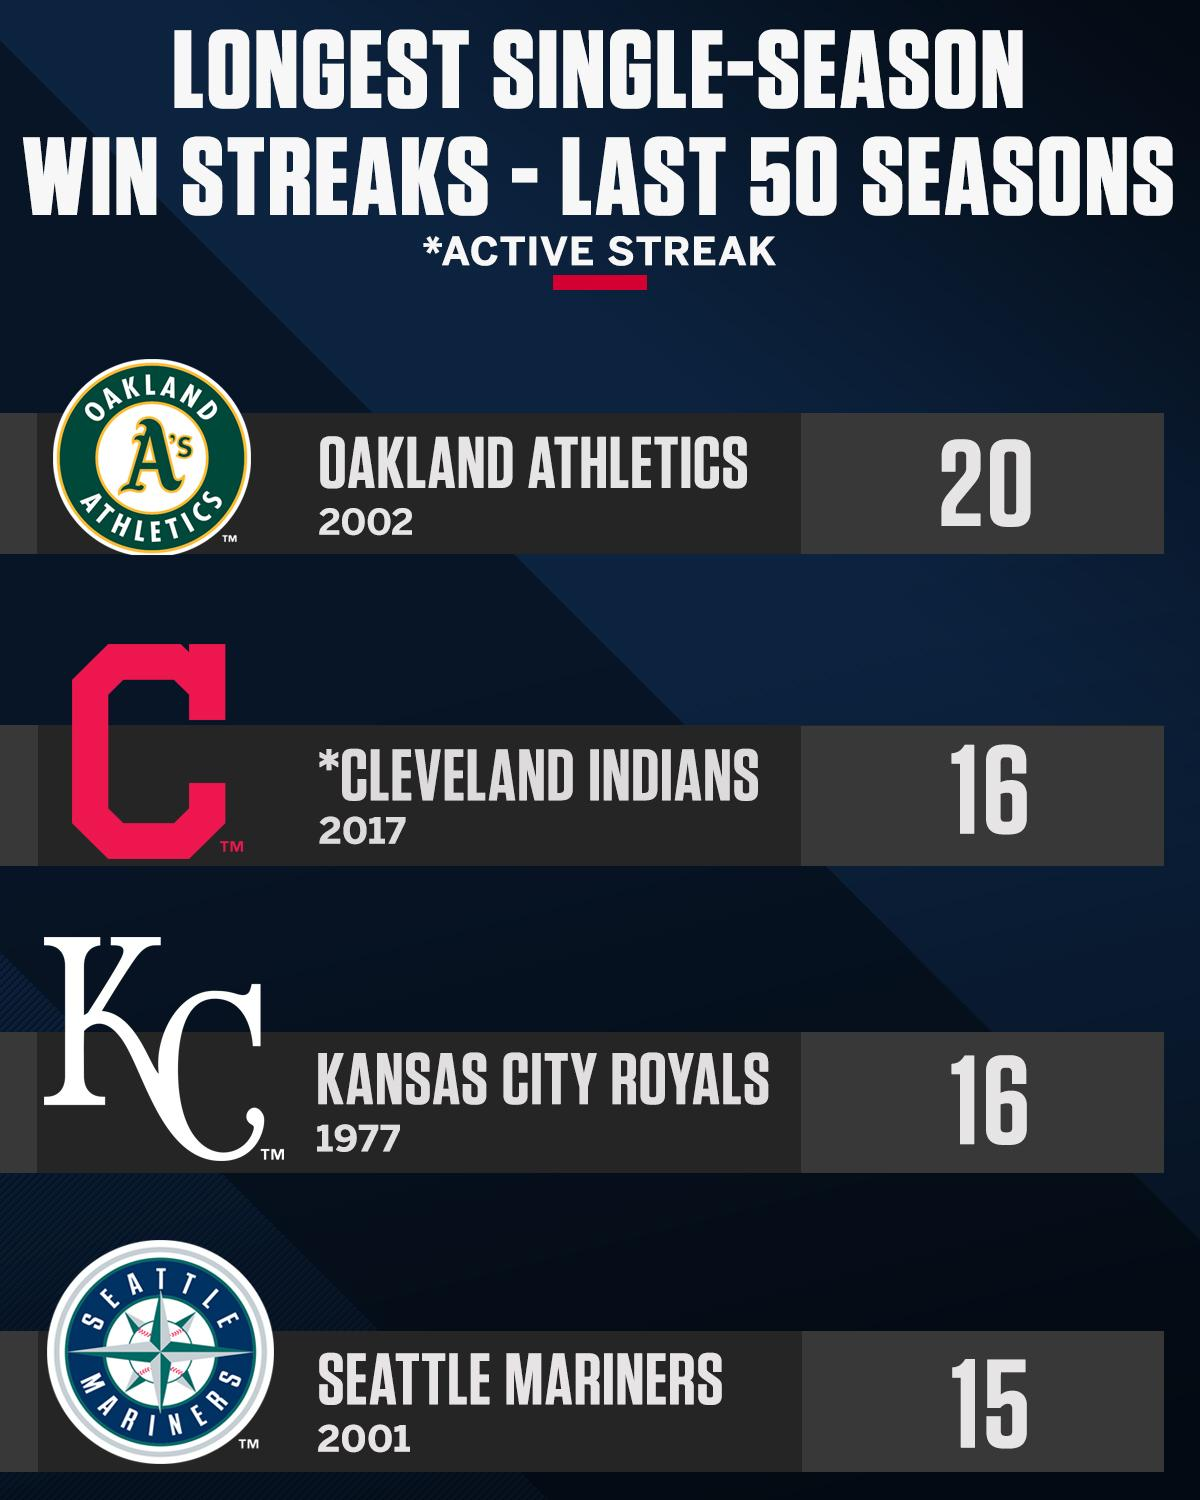 ICYMI: The Indians' record keeps climbing, now at 16 in a row. https://t.co/q6OICcgysr